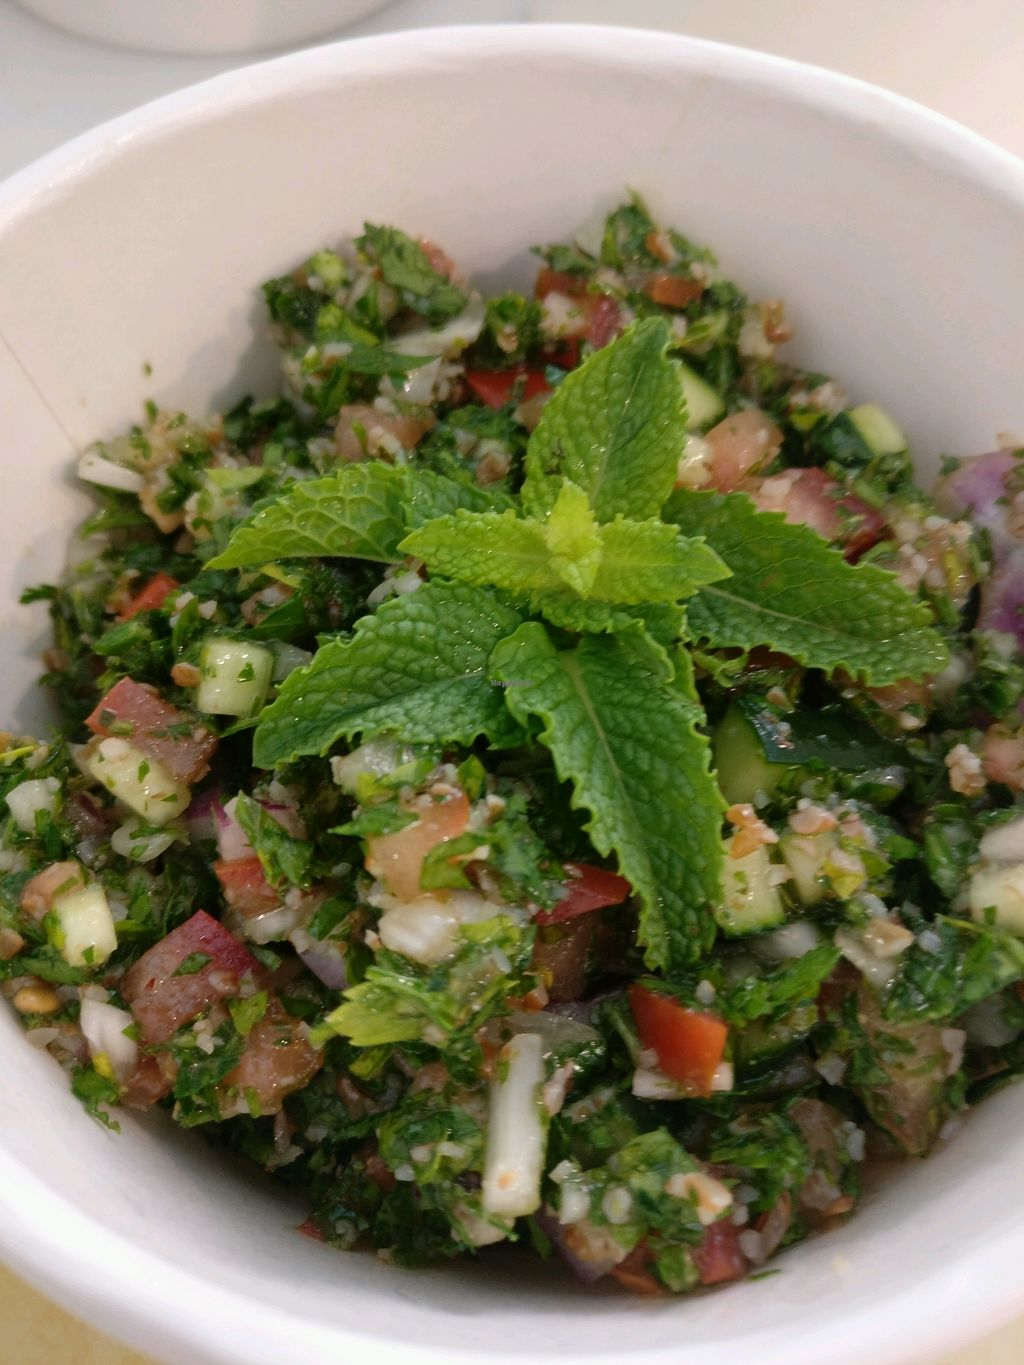 """Photo of Punto Veg  by <a href=""""/members/profile/AliceRossiMarzouka"""">AliceRossiMarzouka</a> <br/>tabbouleh  <br/> December 2, 2017  - <a href='/contact/abuse/image/103123/331340'>Report</a>"""